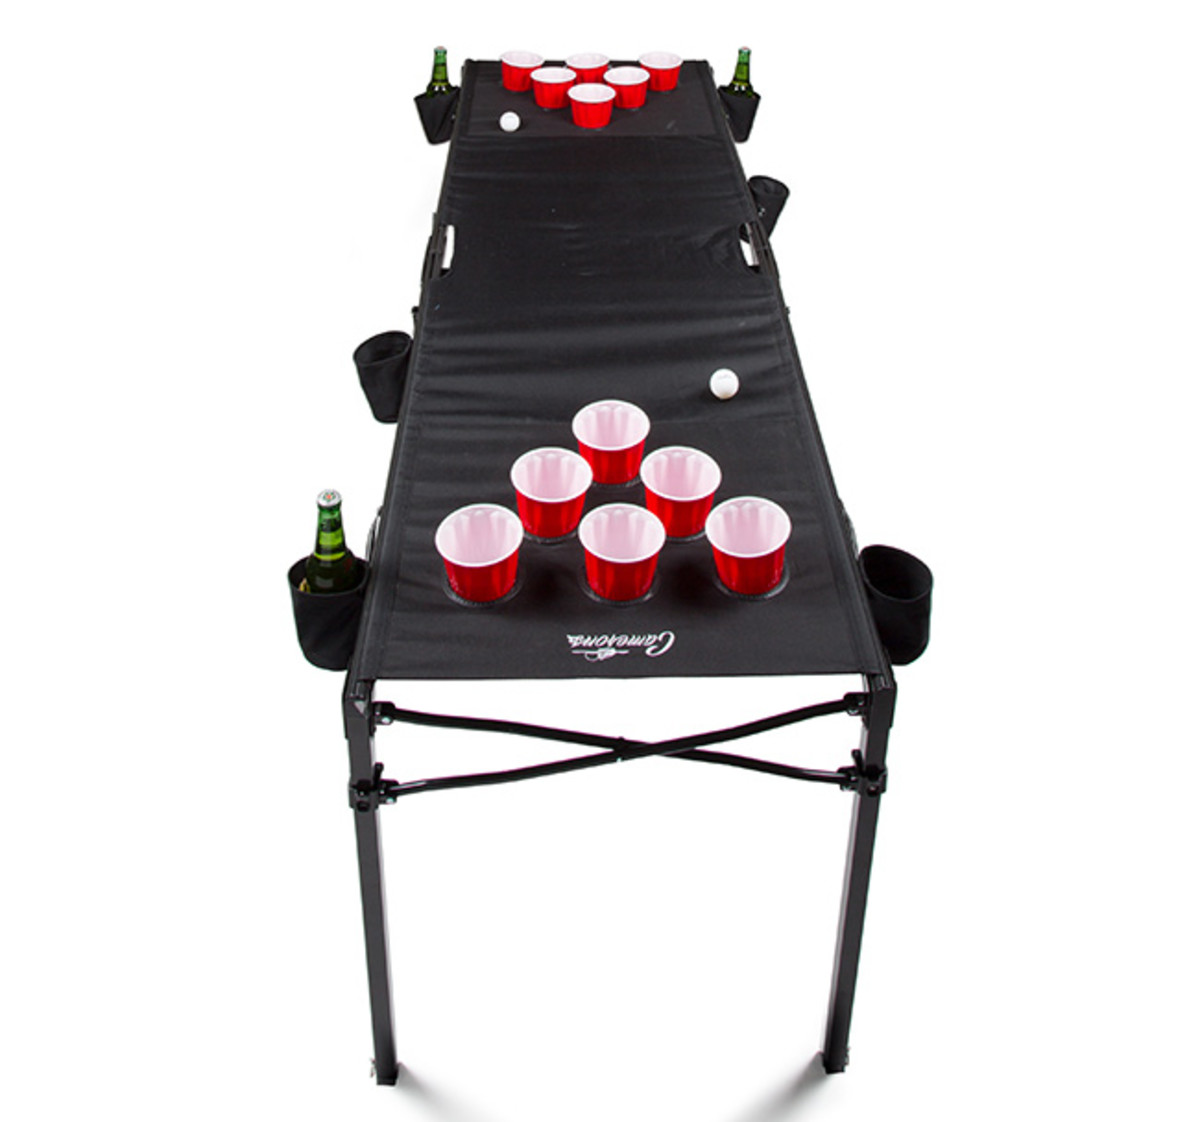 Tailgating Gear: Camerons Portable Beer Pong Table